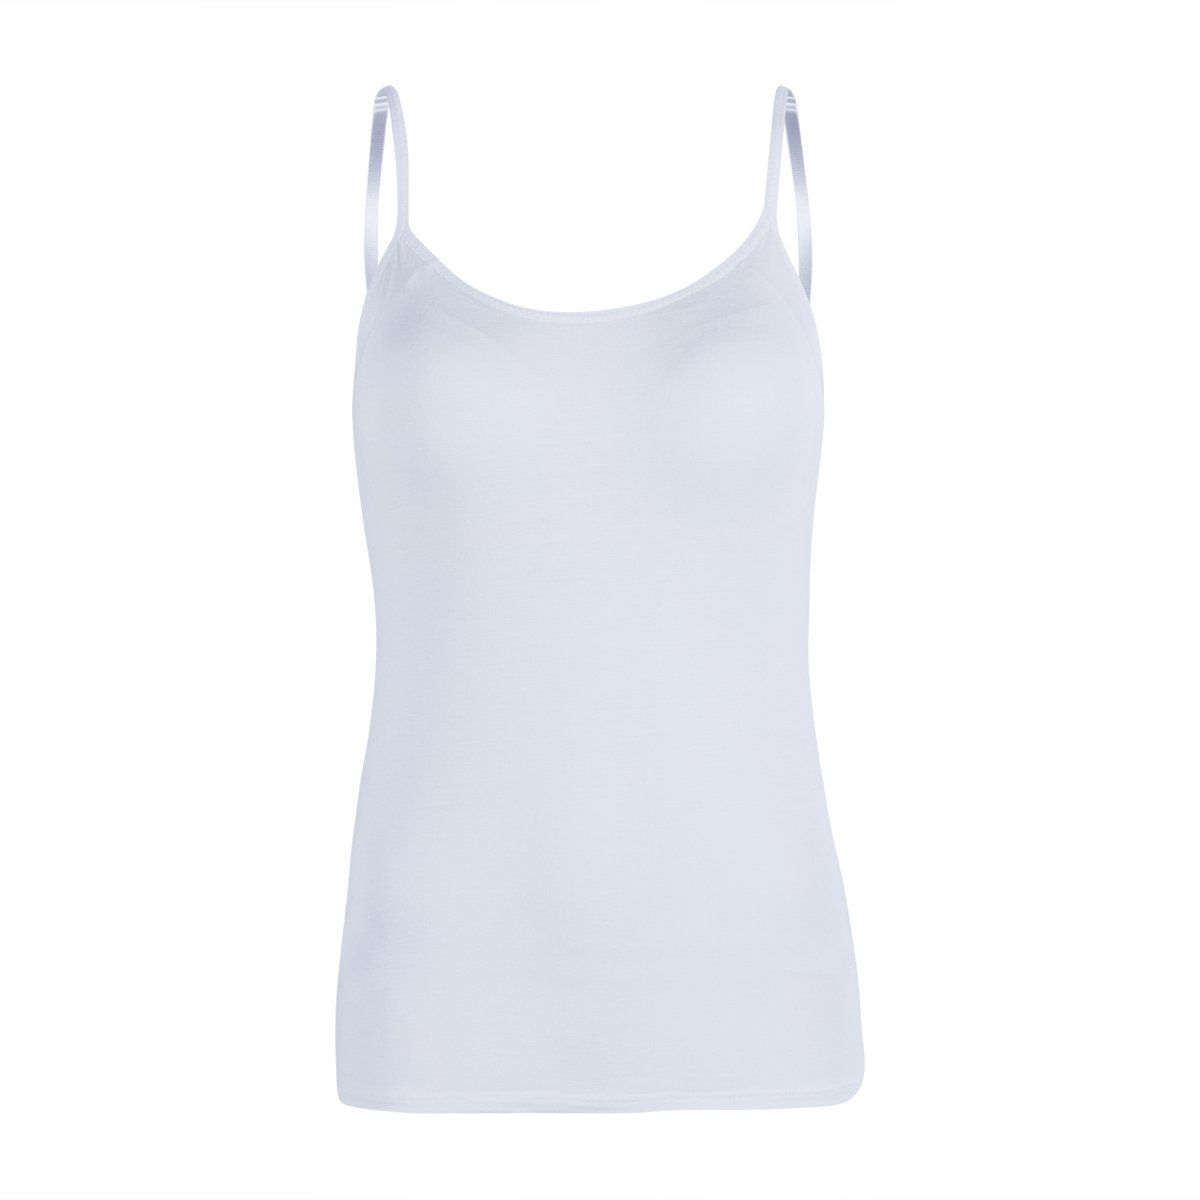 Campeak Women S Solid Strap Cami With Built In Shelf Bra Workout Sports Camisole Tank Top Tank Top Camisole Tank Tops Leisure Wear